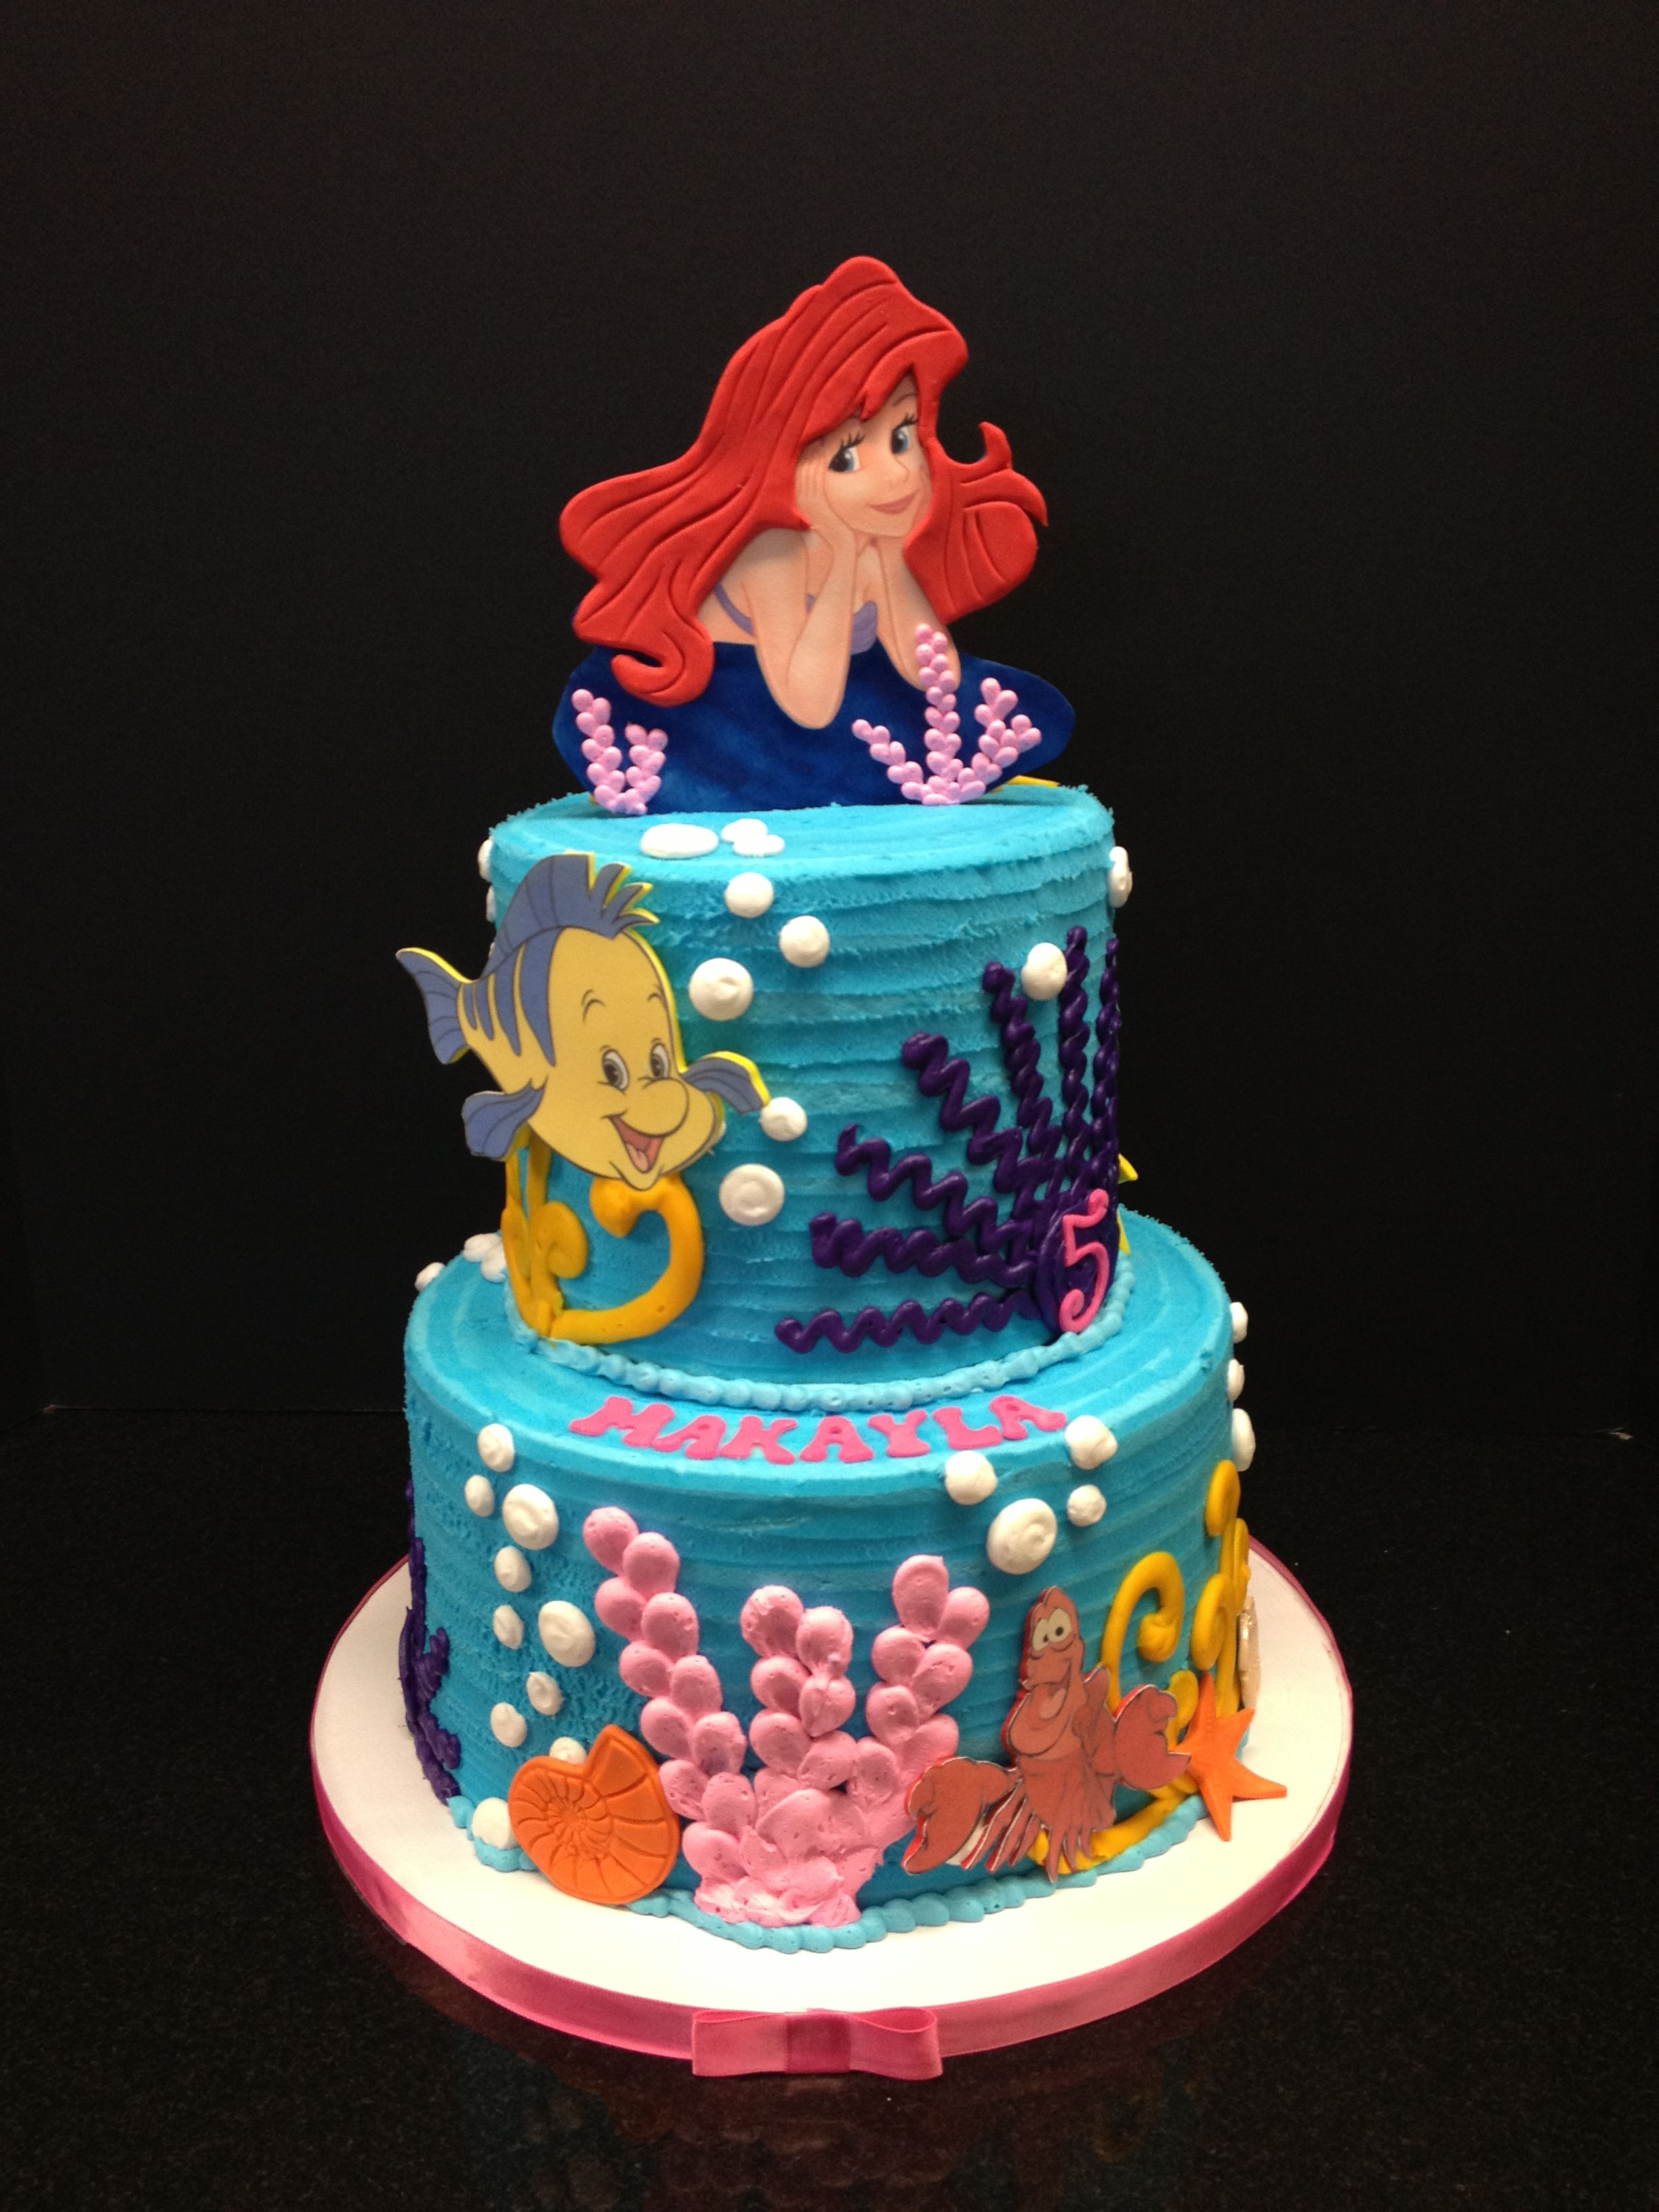 Little Mermaid Cake February 18 2017 At 2448 3264 In